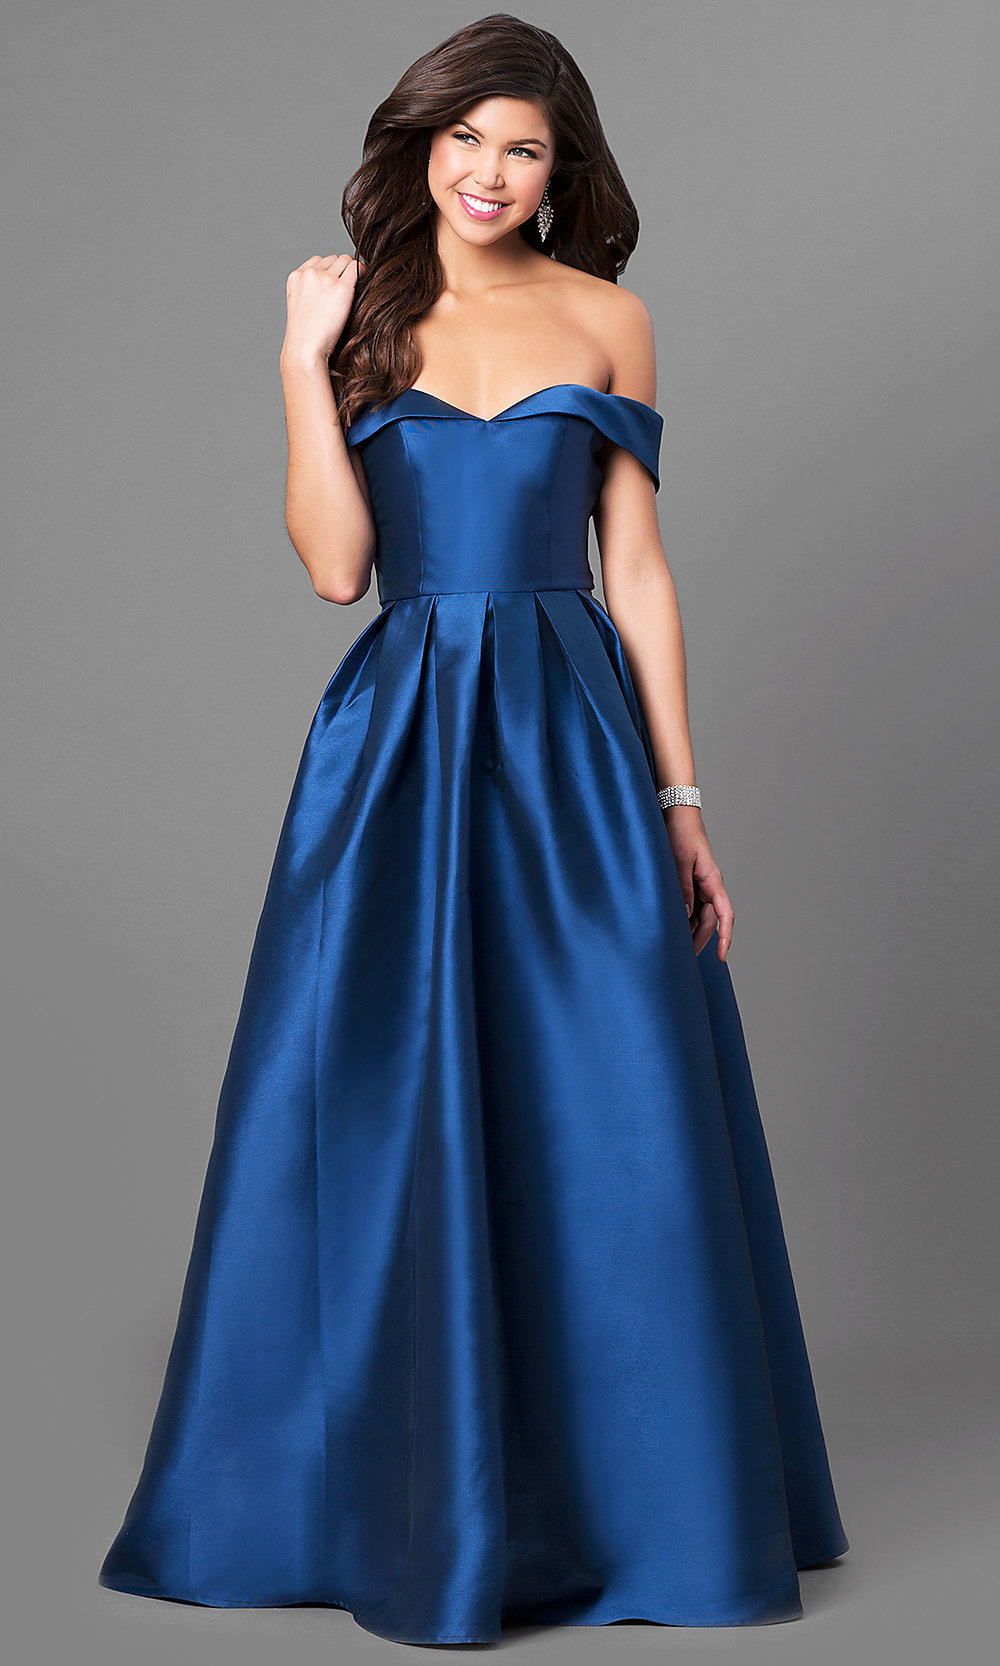 Shop at MRP Clothing for more fashion online and get delivery to your door. We have the dress for every occasion, casual day and evening formal dresses. We use cookies to ensure you get the best possible experience.